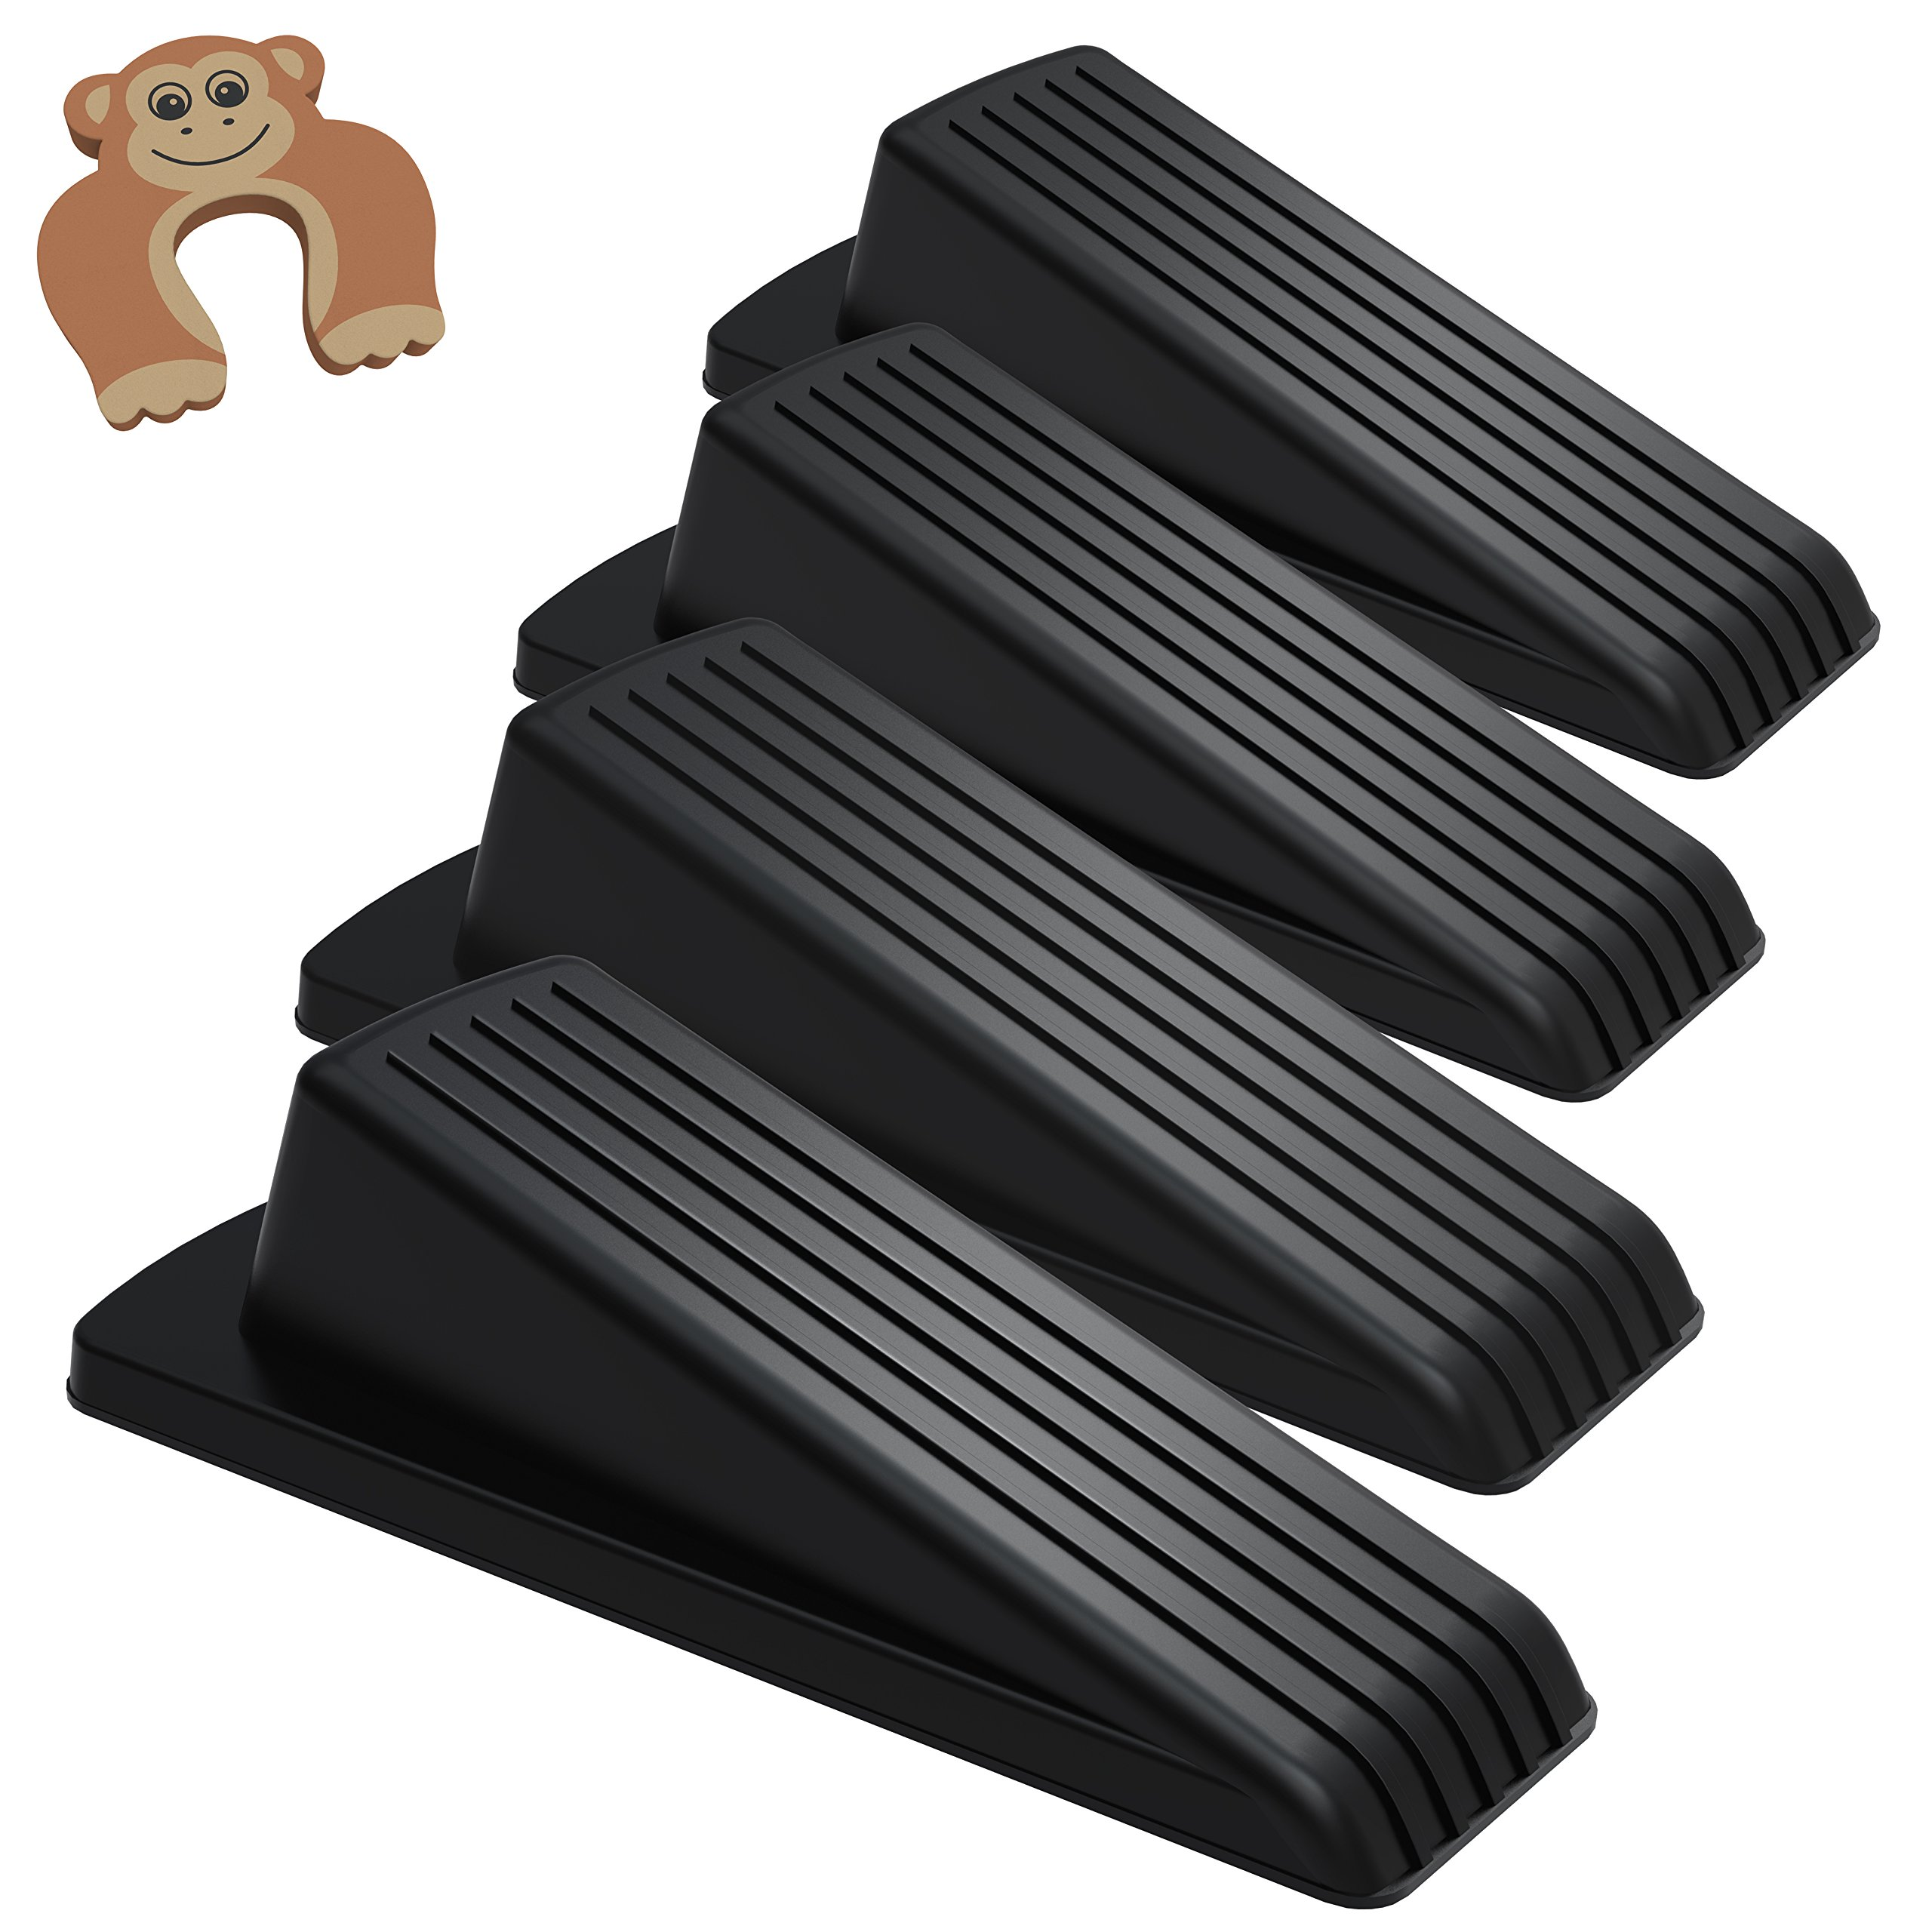 Door Stop, Ezire Premium Door Stopper Wedge Rubber With Finger Pinch Guard- Multi Surface, Non Scratching Slip Resistant Design- Gaps up to 1.2 Inches (Black 4+1Pack)